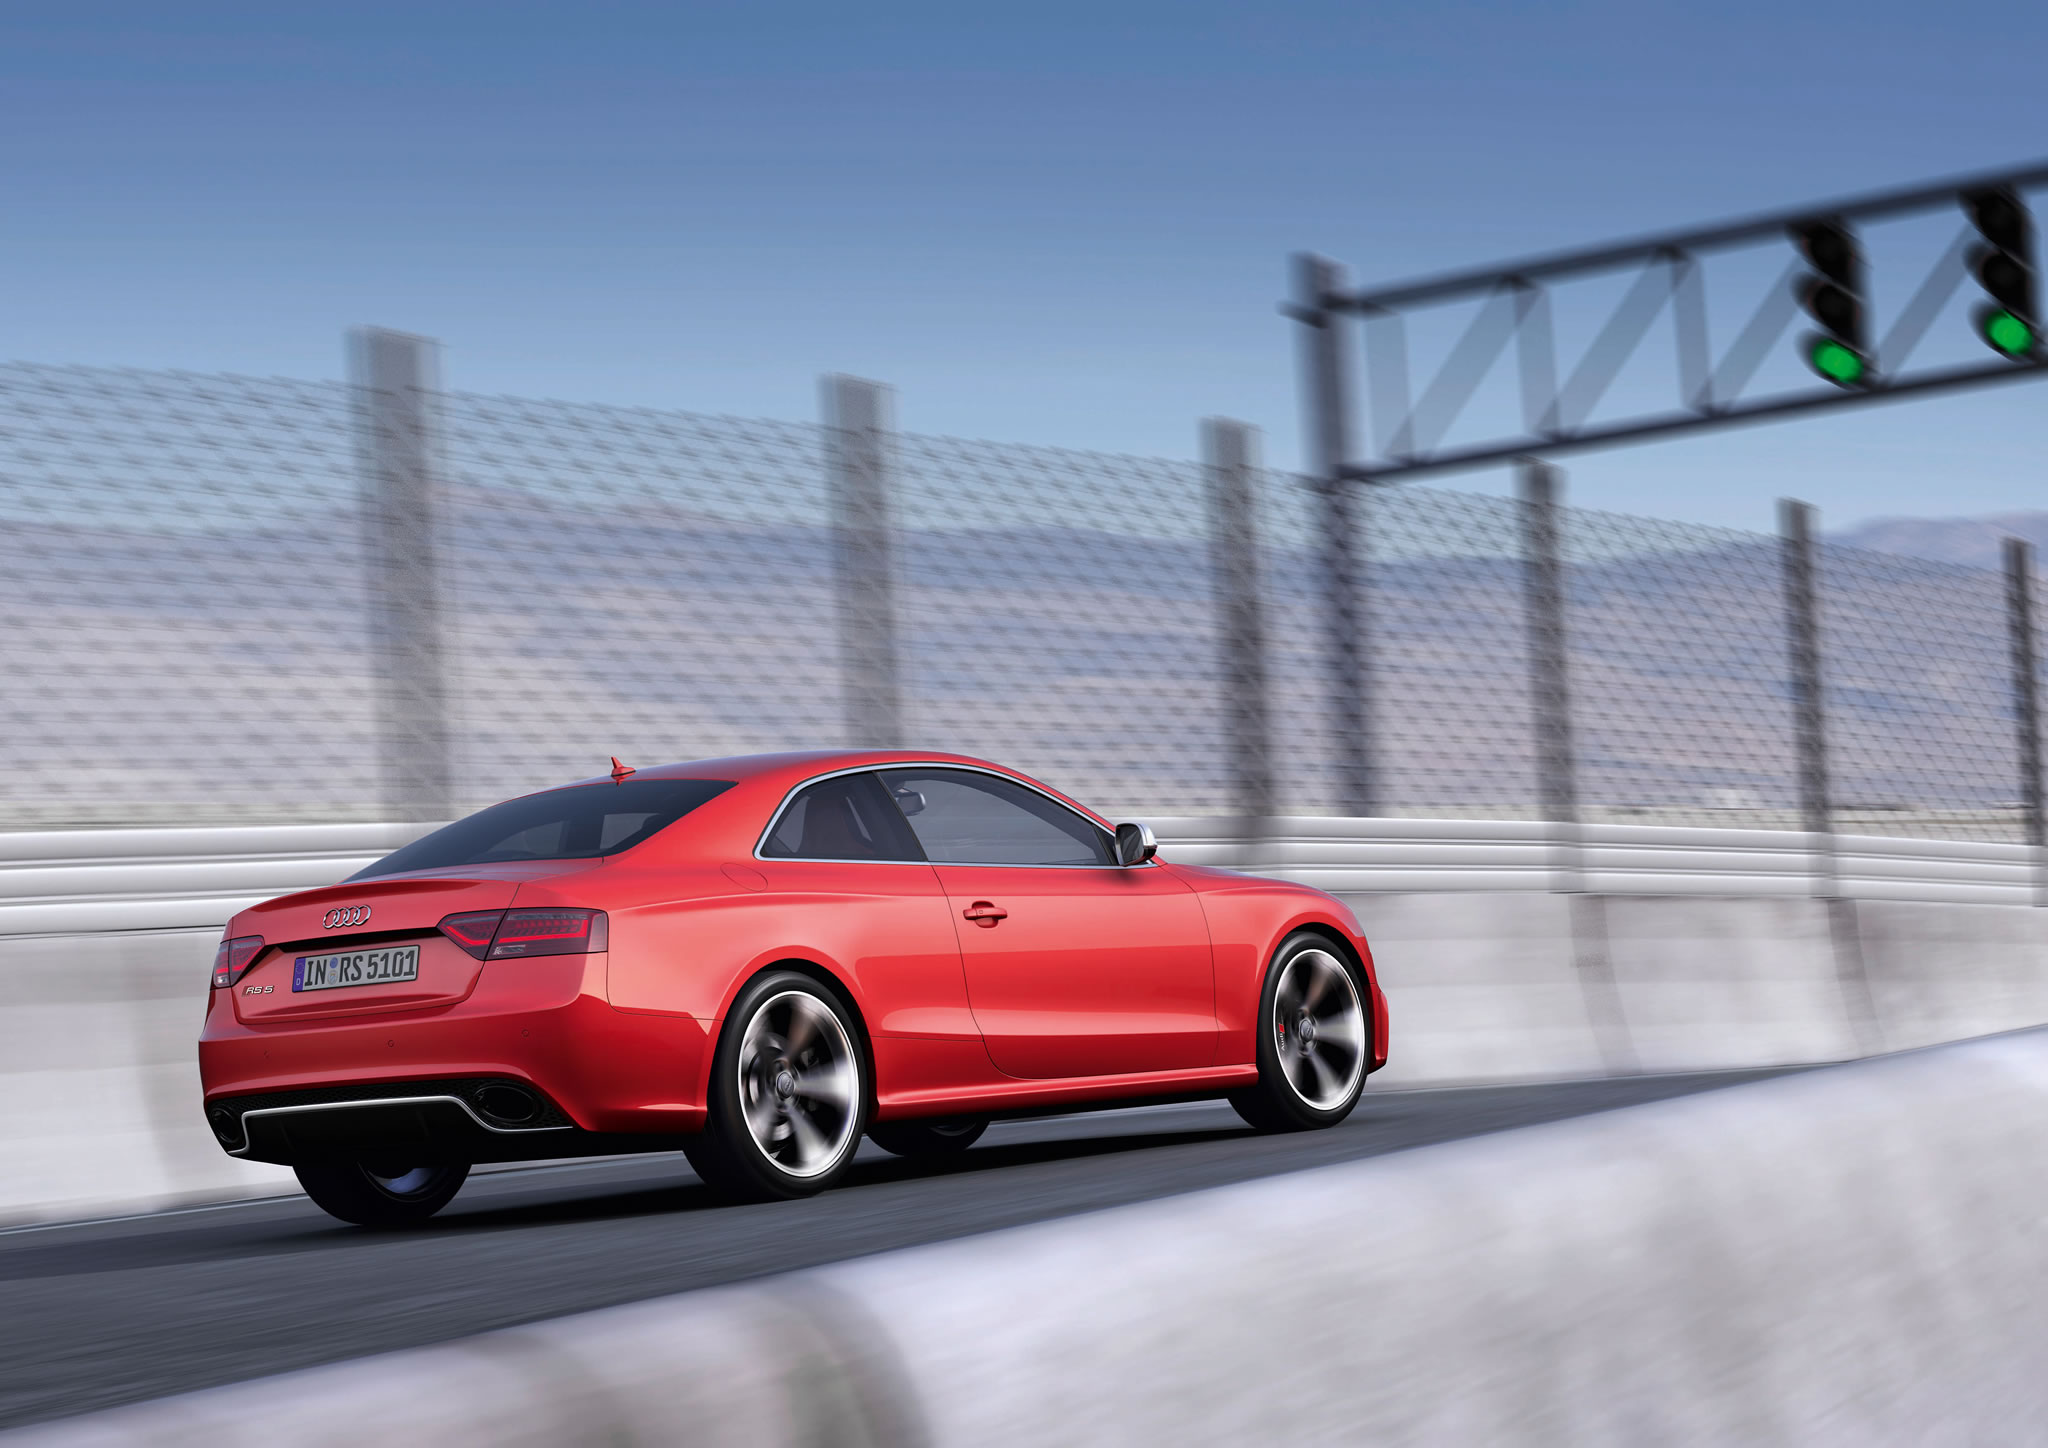 2014 audi rs 5 coupe rear photo misano red color driving size 2048 x 1448 nr 32 49. Black Bedroom Furniture Sets. Home Design Ideas